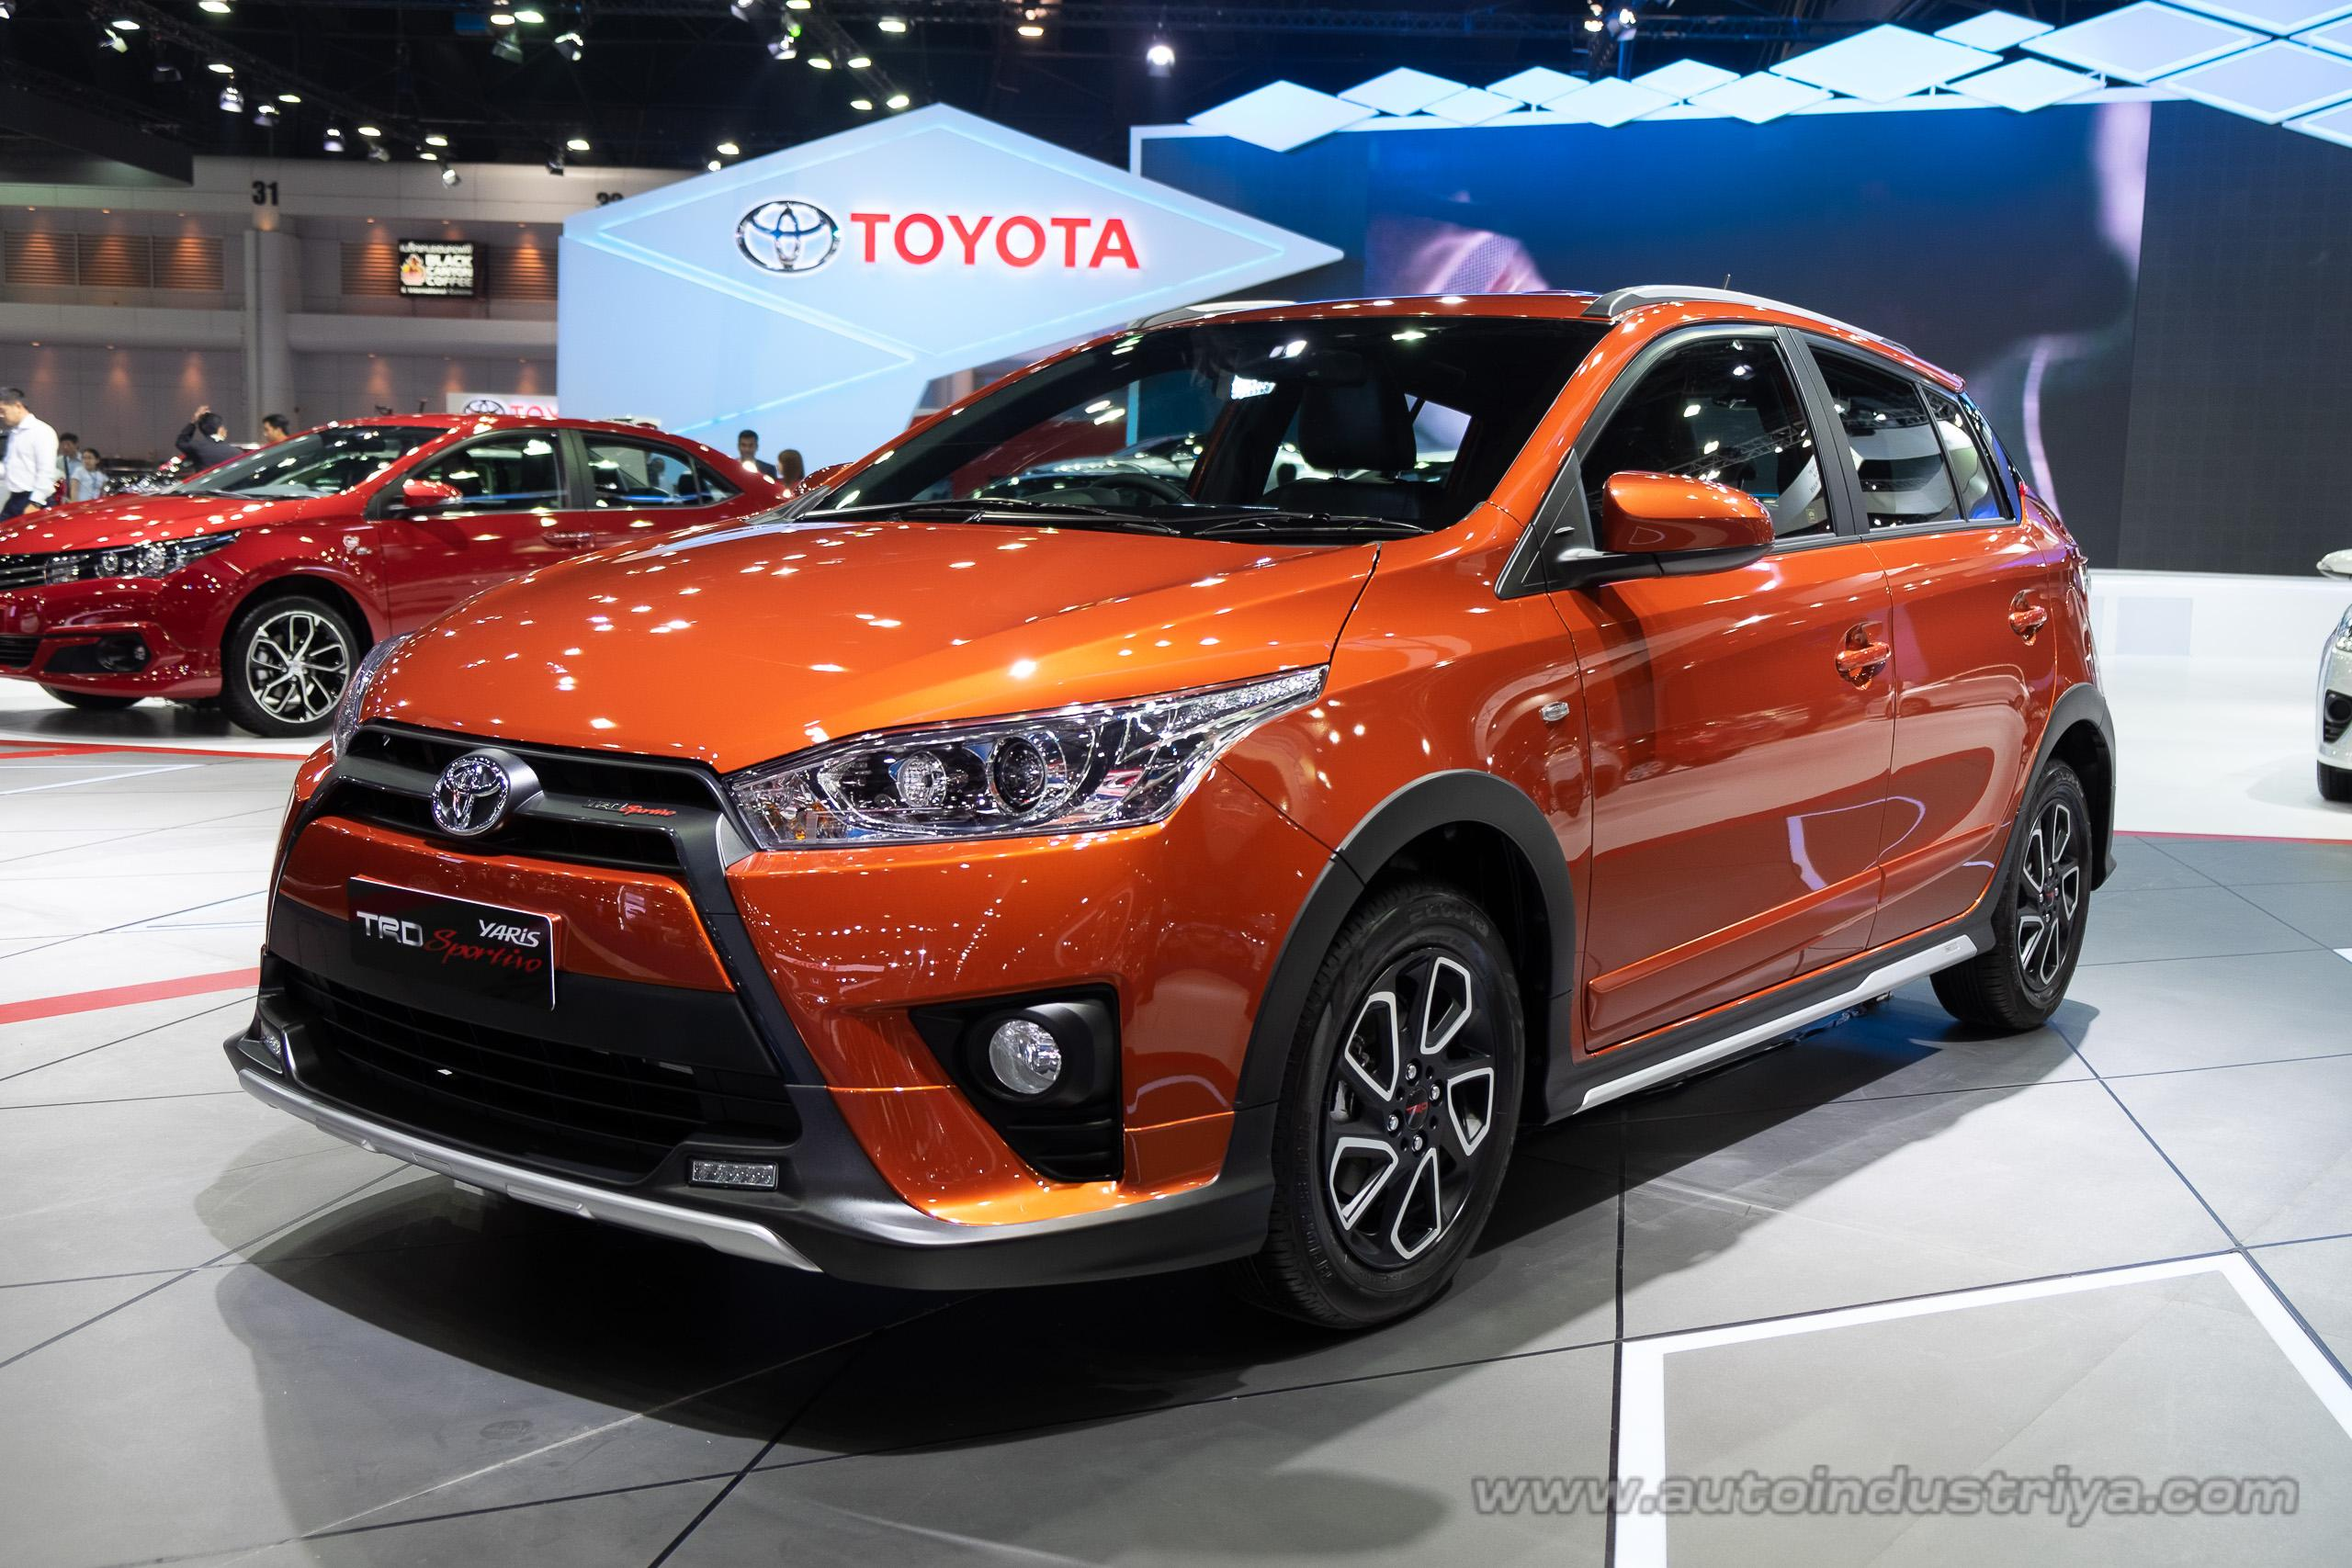 new yaris trd grand avanza e 1.3 manual bangkok 2016 preview toyota sportivo revealed auto news